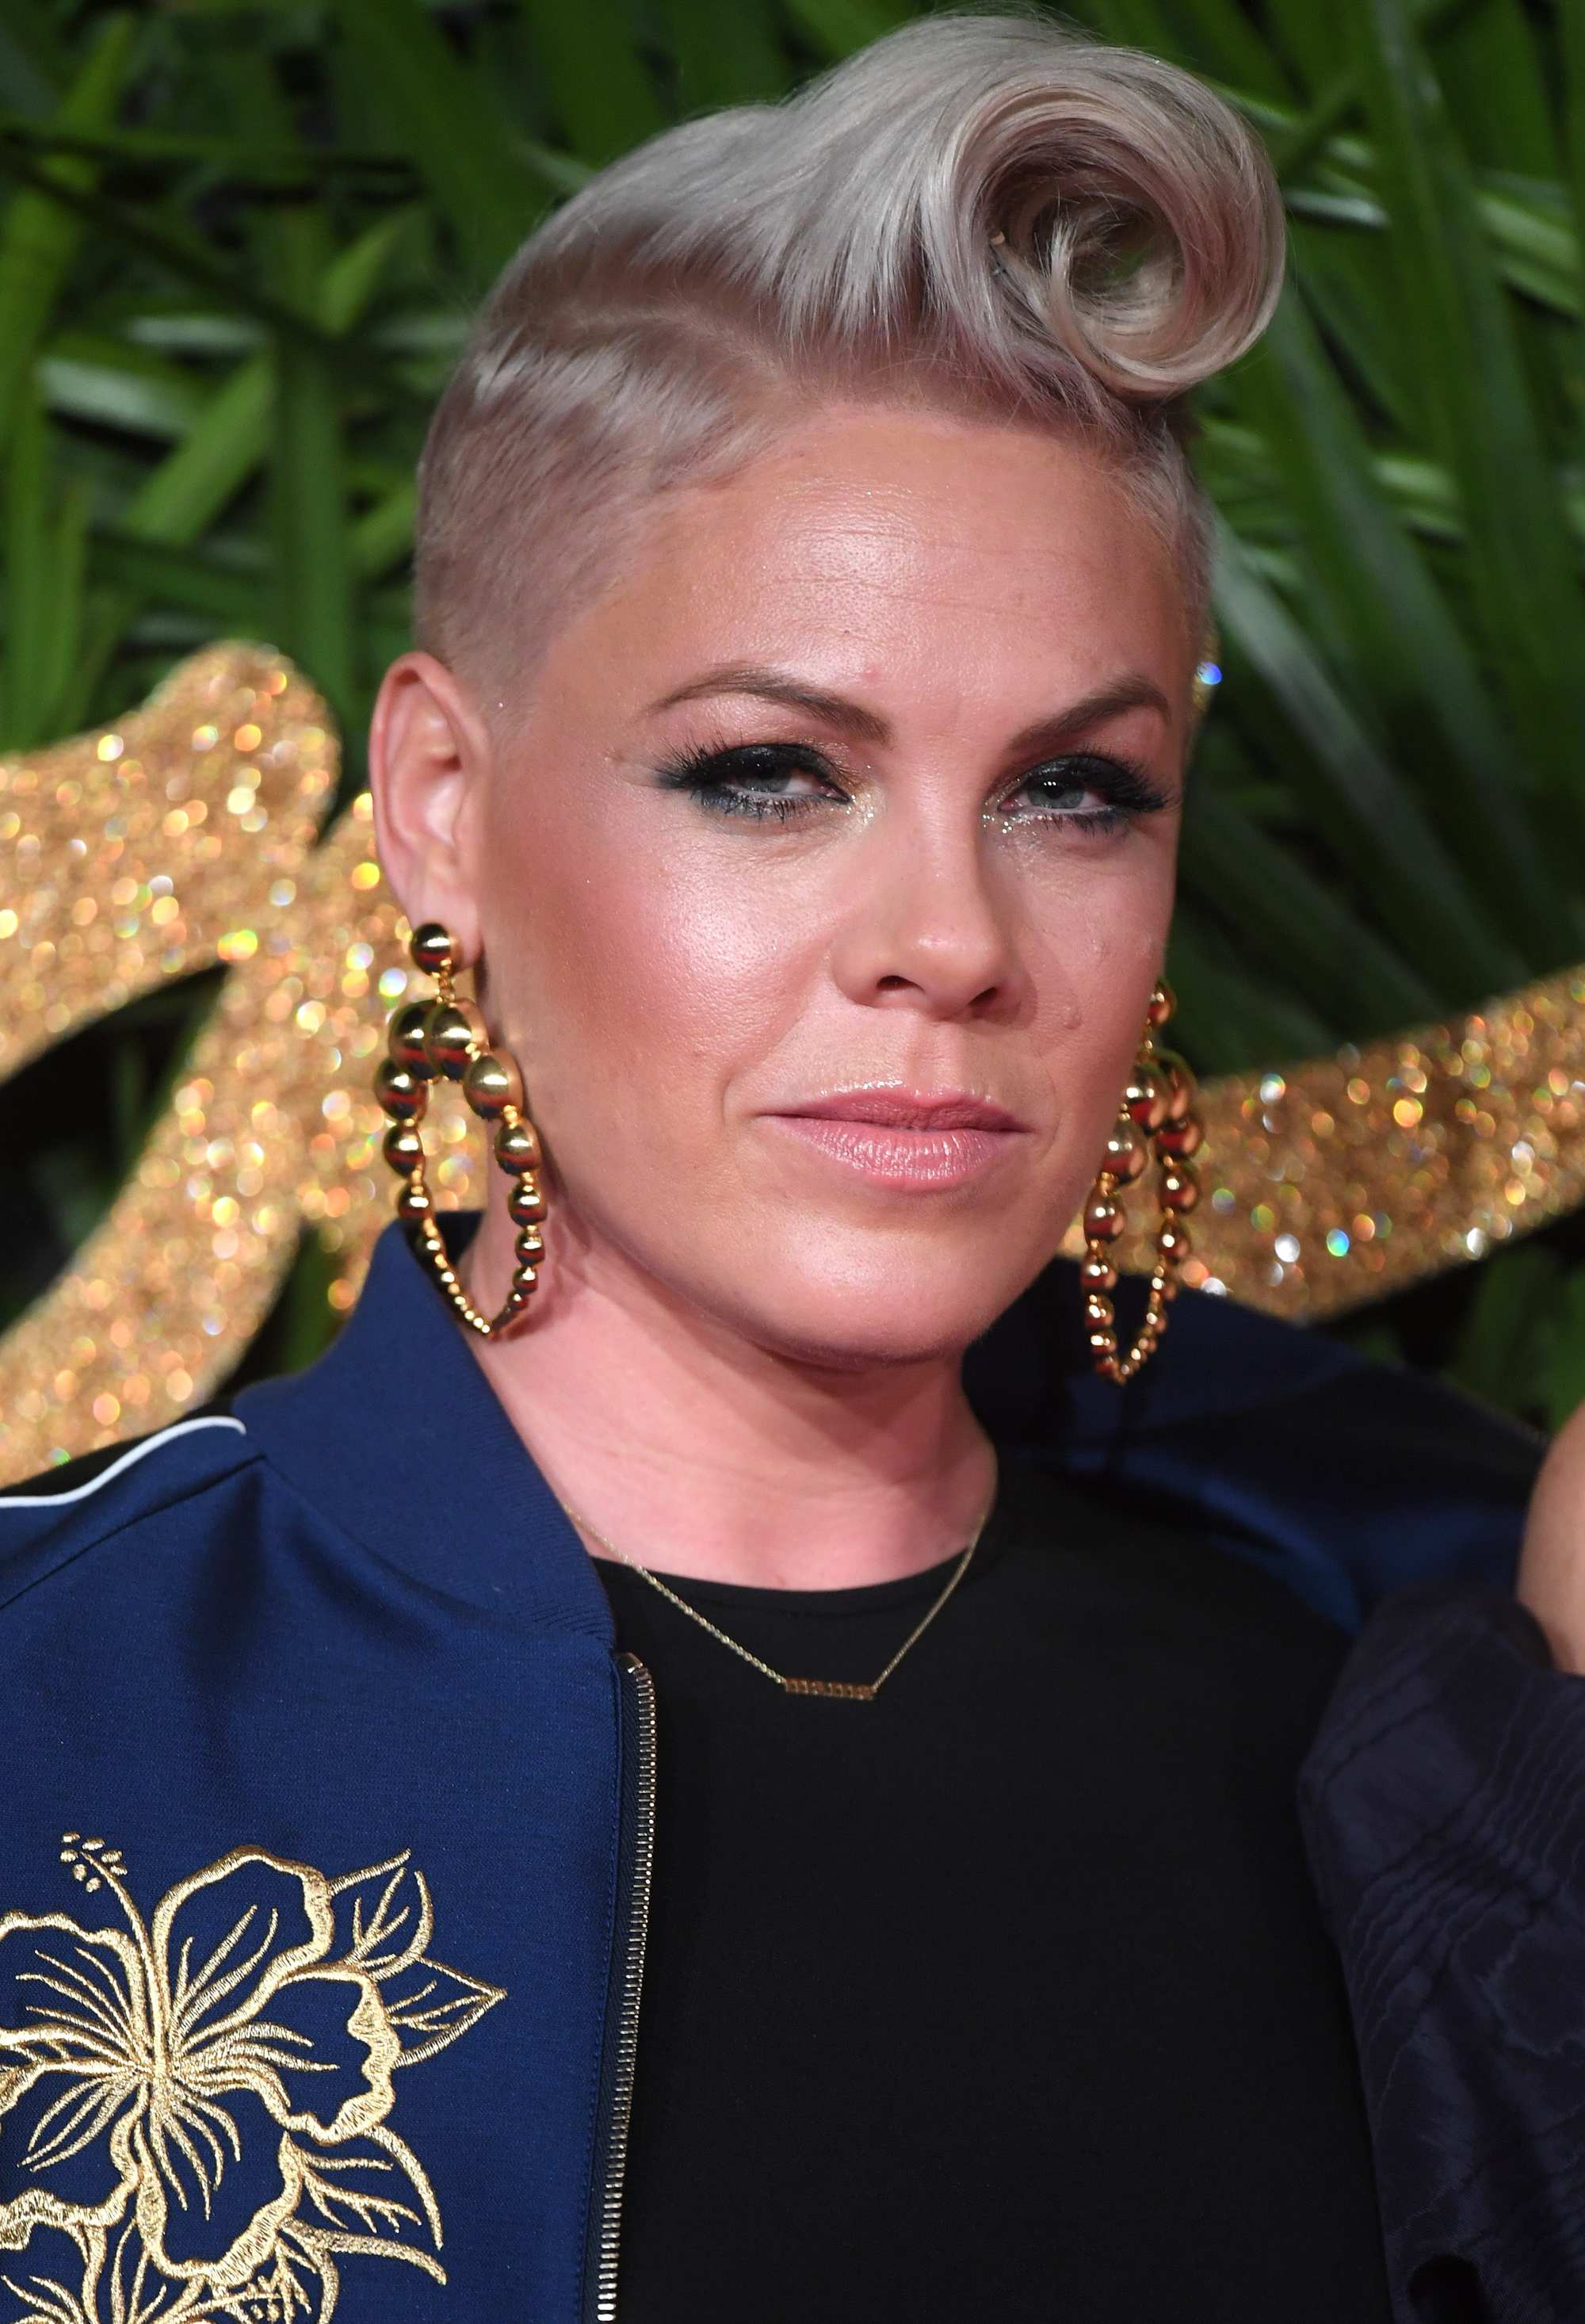 american singer pink at the british fashion awards with a rockabilly quiff hairstyle